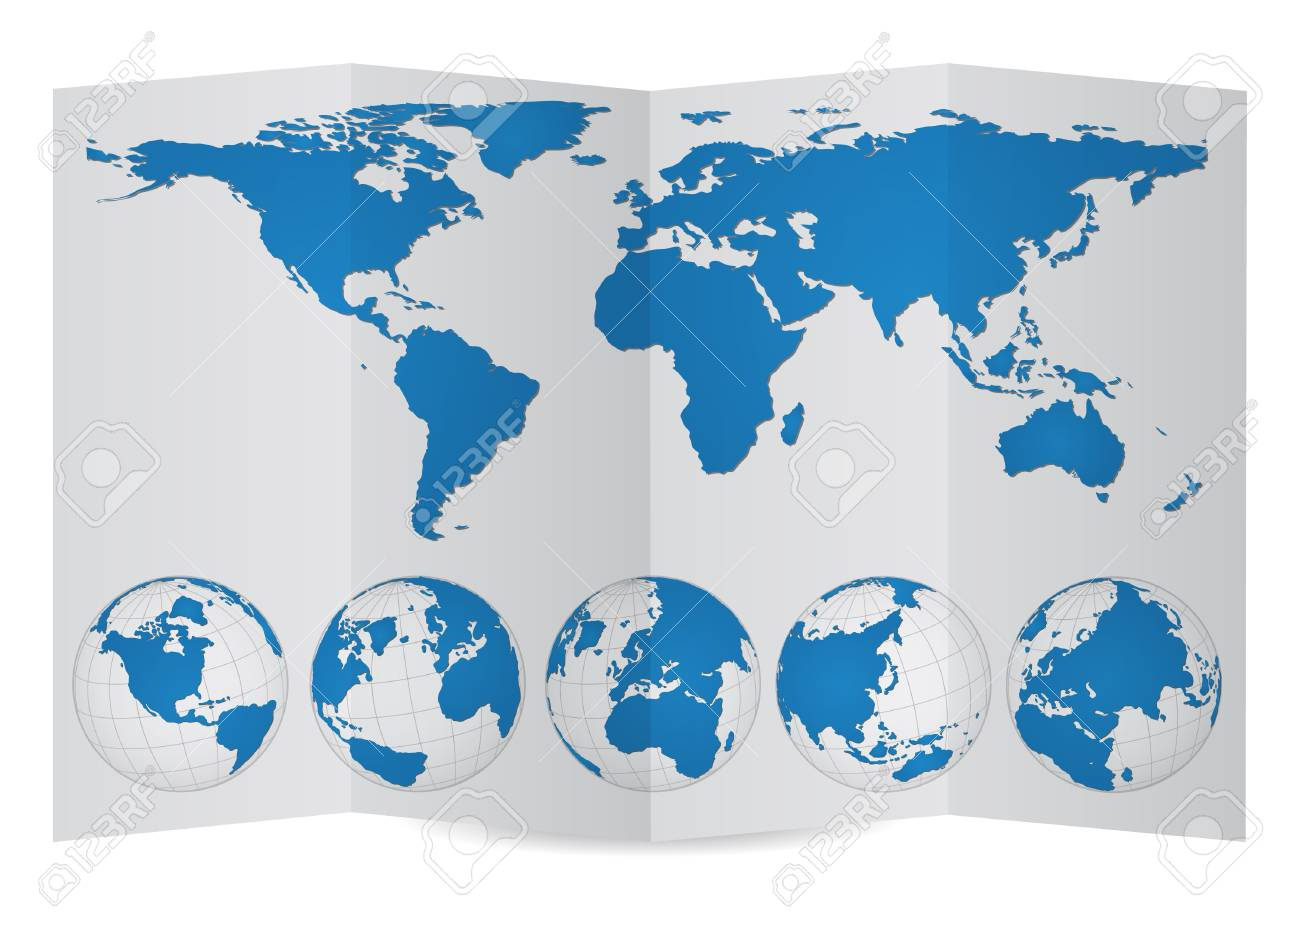 World map globe on paper carpeta ilustracin vectorial eps 10 foto de archivo world map globe on paper carpeta ilustracin vectorial eps 10 gumiabroncs Choice Image